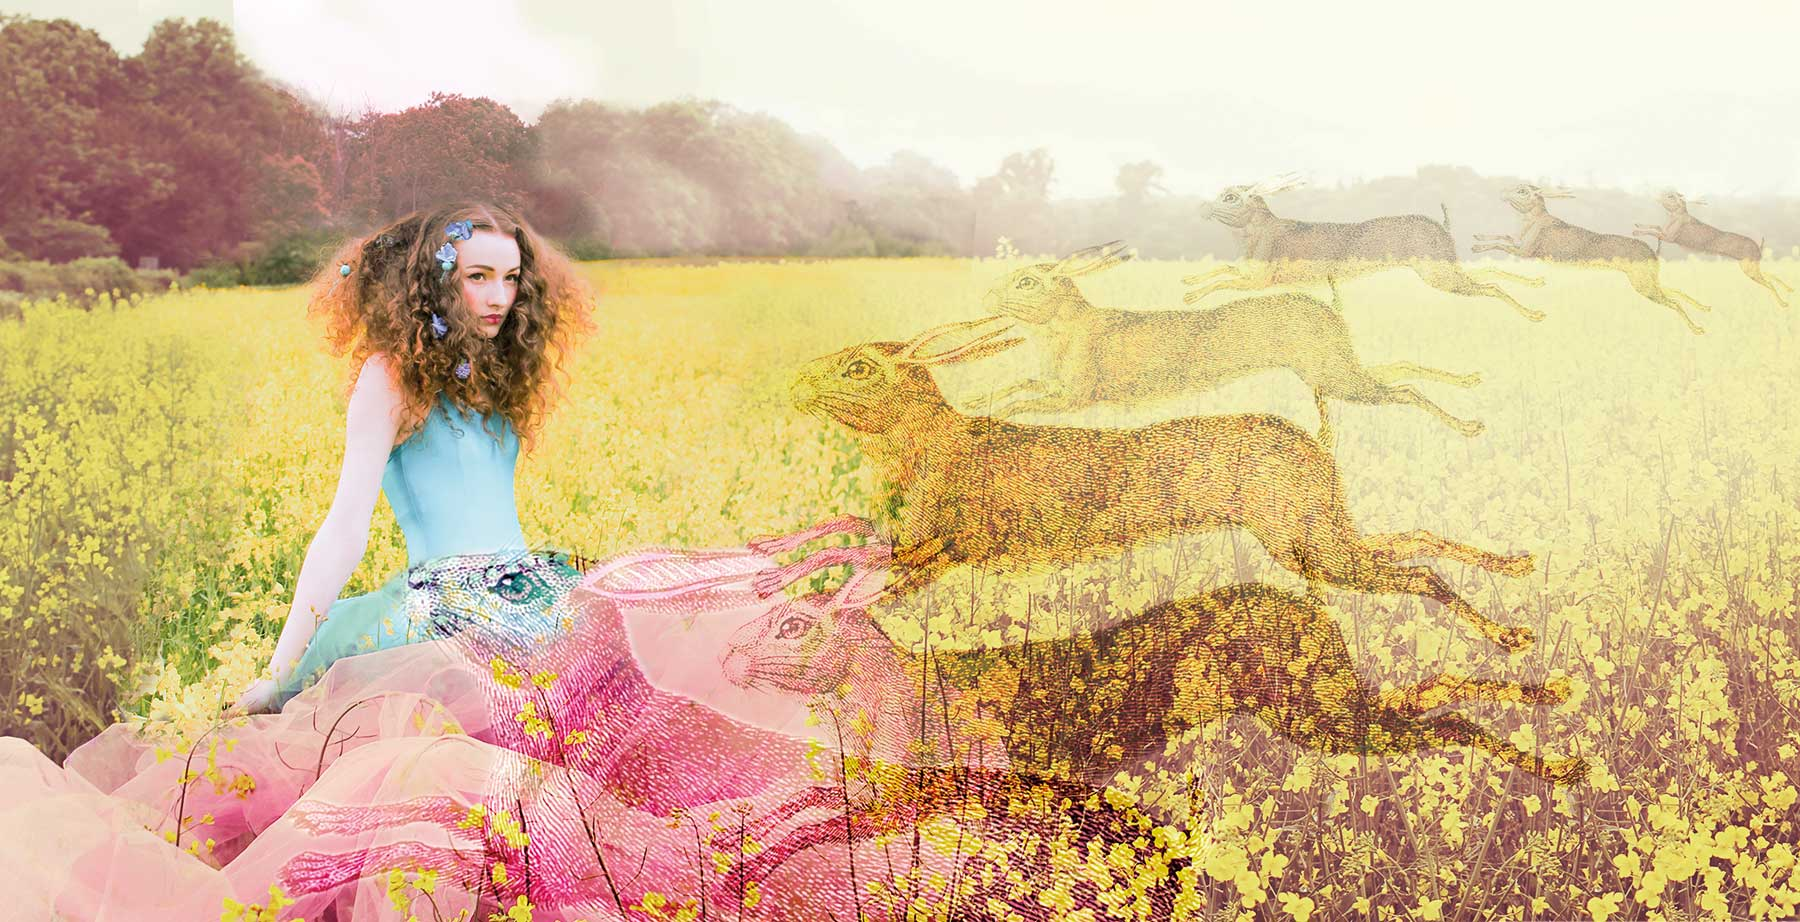 dream sequence of girl in a corn field with hares running towards her